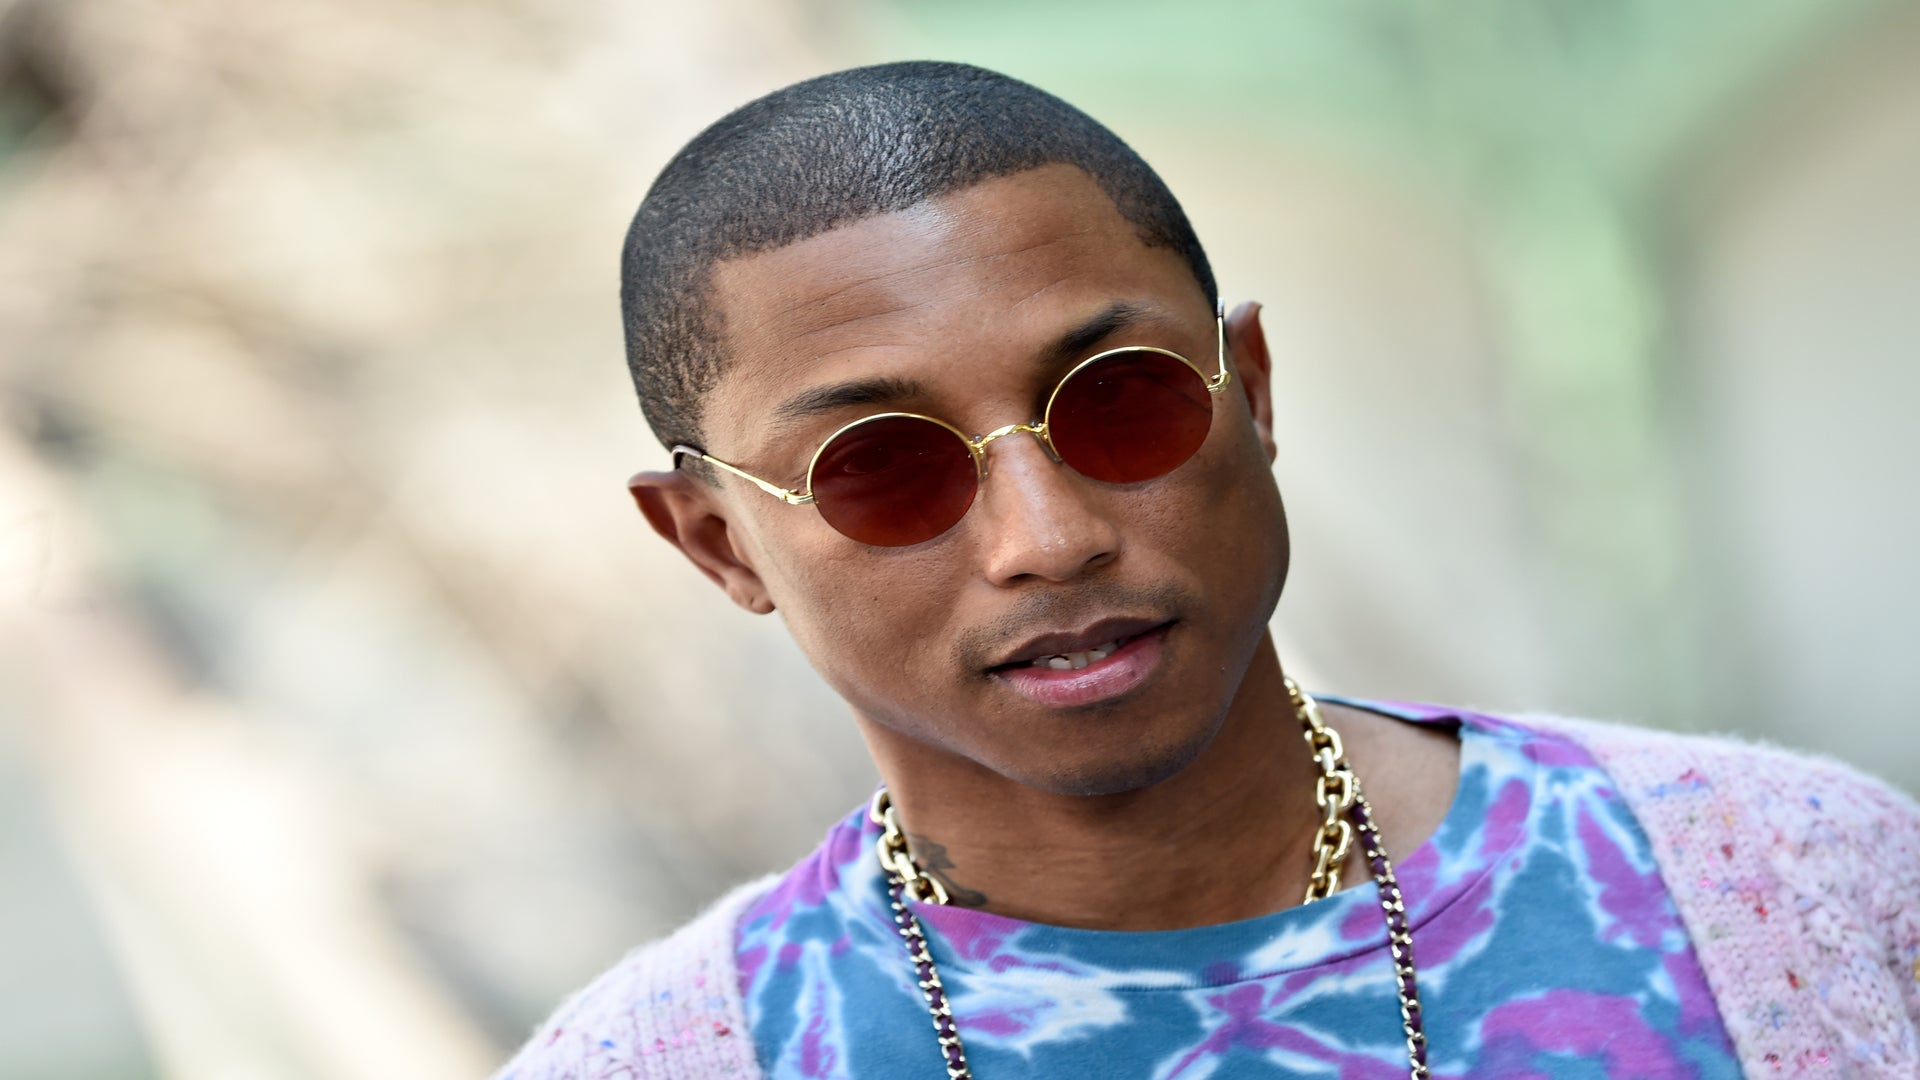 Pharrell Williams Initially Wrote 'Frontin' For Prince